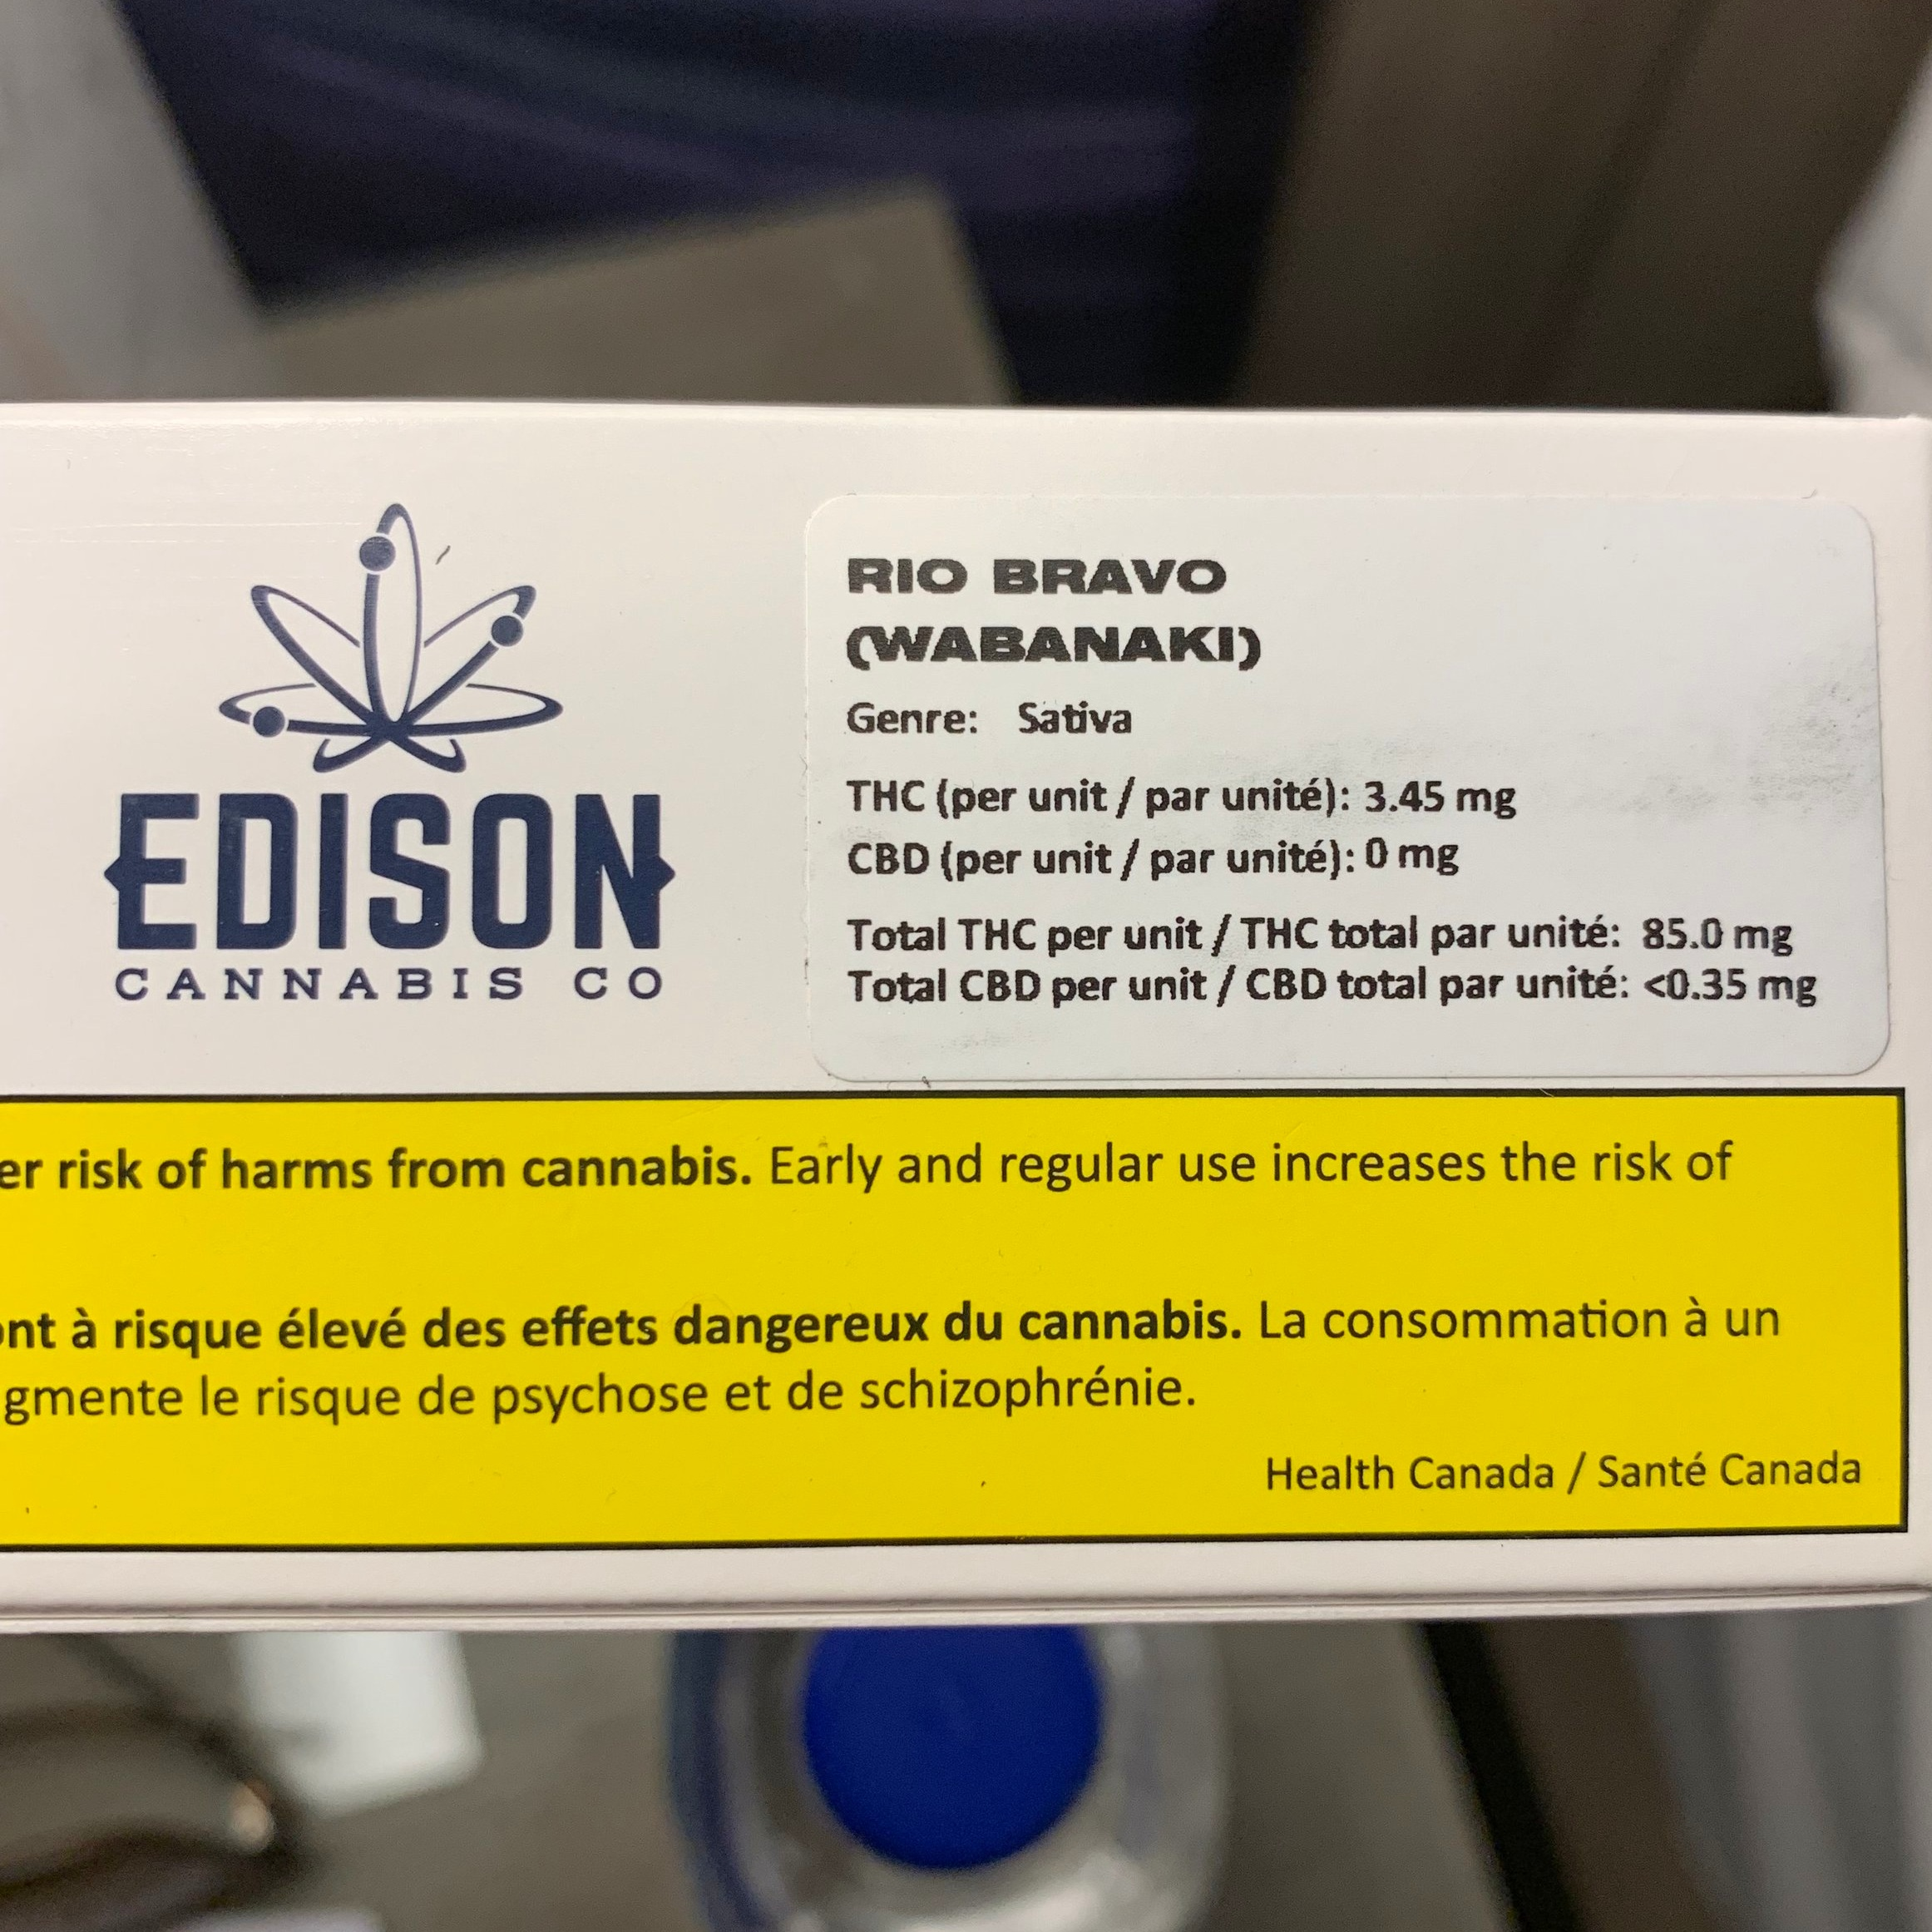 This is a single pre-roll joint. The most valuable information I want as a consumer is not included - the % of THC in the flower. Do you understand how to read this label? Leave a comment below.